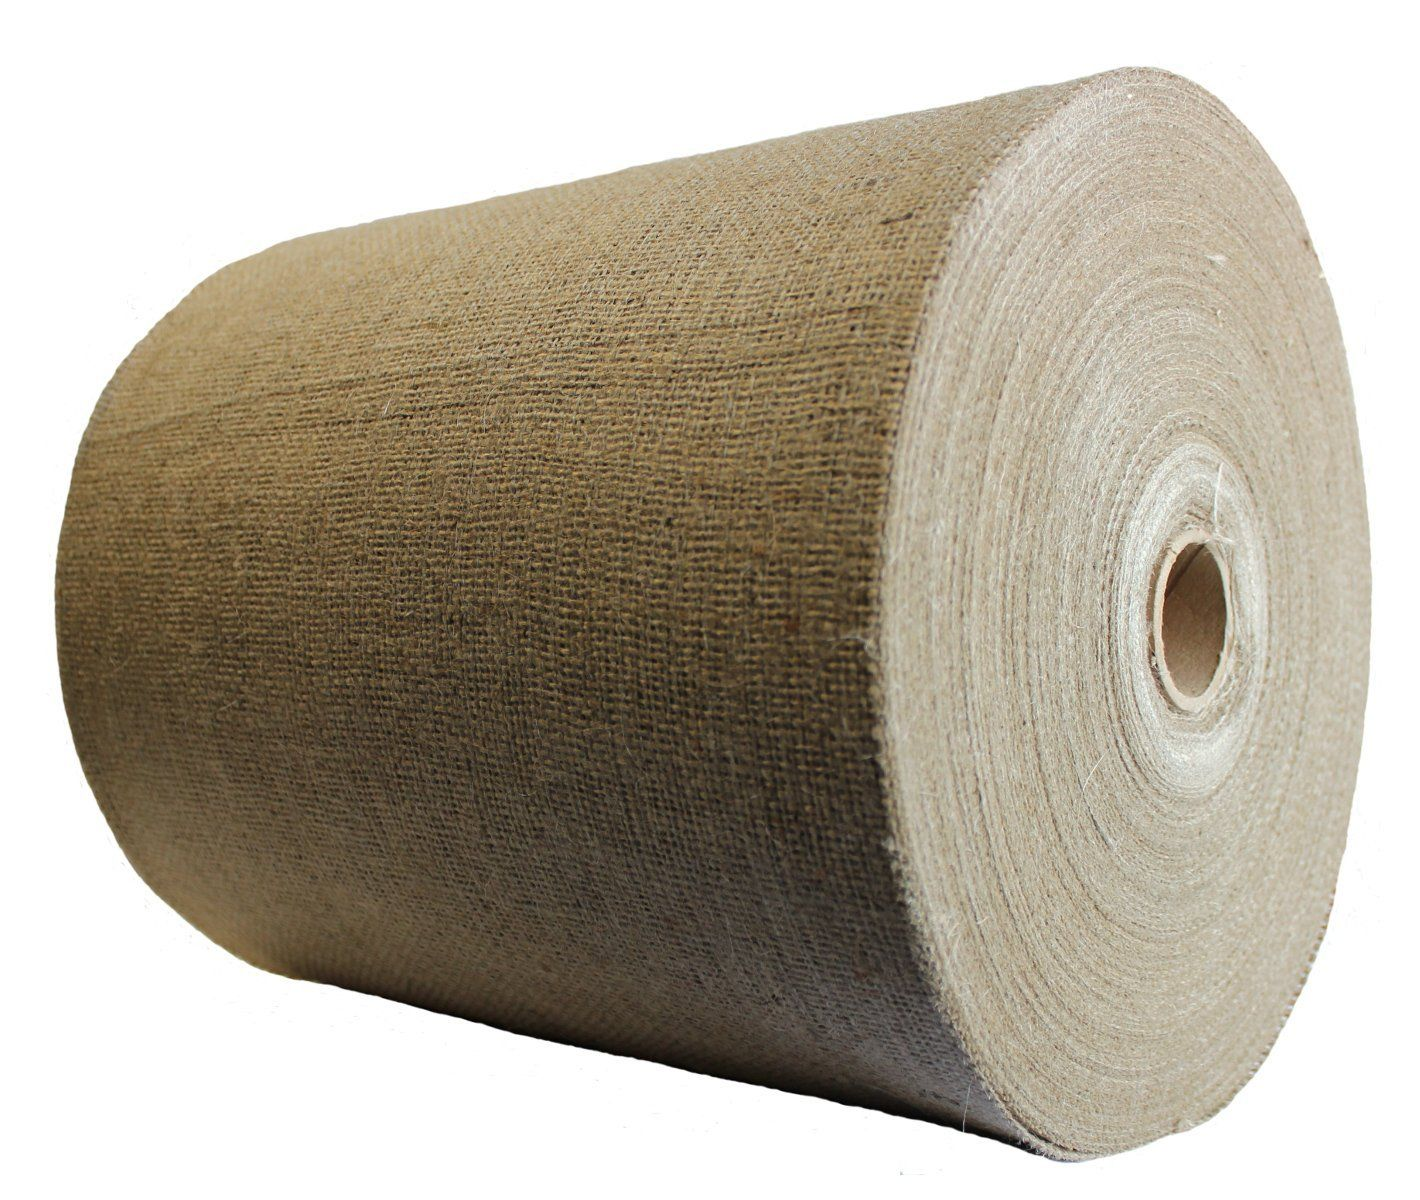 14 Inch 10oz Burlap Roll 100 Yards Burlap Rolls Lace Table Runners Lace Table Runner Wedding